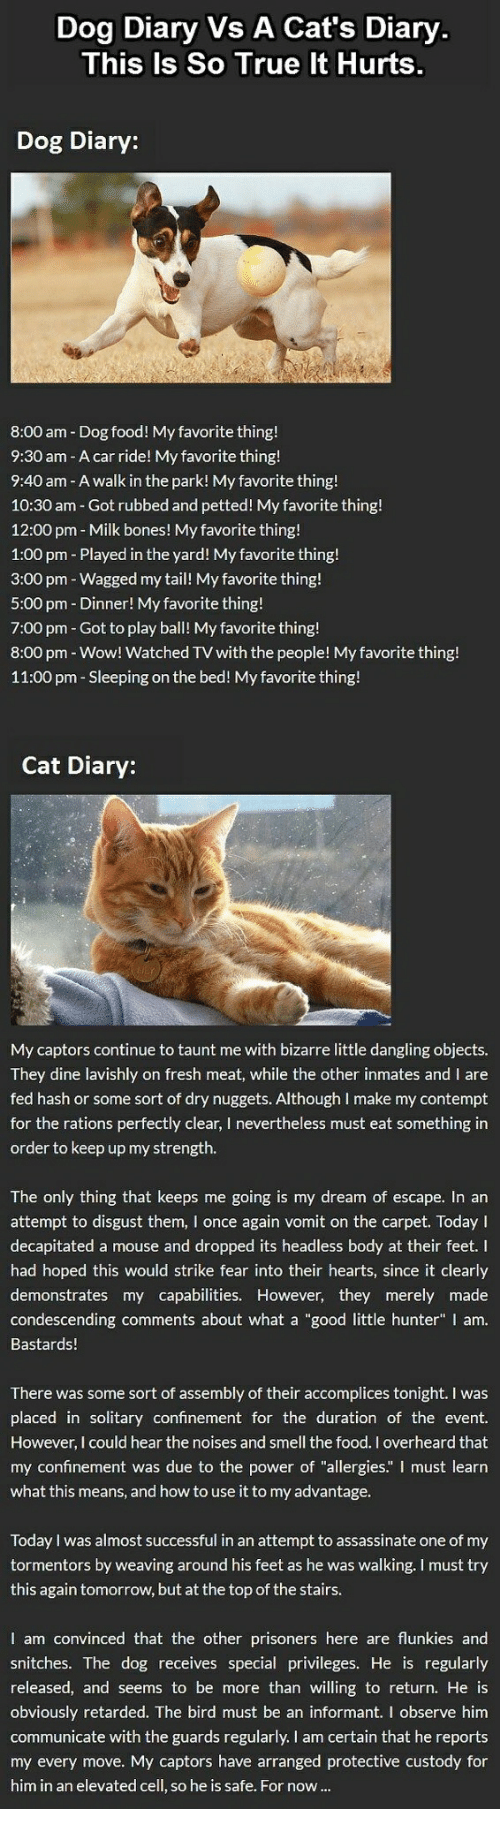 """Bones, Cats, and Food: Dog Diary Vs A Cat's Diary  This Is So True It Hurts  Dog Diary:  8:00 am Dog food! My favorite thing!  9:30 am - A car ride! My favorite thing!  9:40 am A walk in the park! My favorite thing!  10:30 am - Got rubbed and petted! My favorite thing!  12:00 pm - Milk bones! My favorite thing!  1:00 pm Played in the yard! My favorite thing!  3:00 pm Wagged my tail! My favorite thing!  5:00 pm Dinner! My favorite thing!  7:00 pm - Got to play ball! My favorite thing!  8:00 pm-Wow! Watched TV with the people! My favorite thing!  11:00 pm Sleeping on the bed! My favorite thing!  Cat Diary:  My captors continue to taunt me with bizarre little dangling objects  They dine lavishly on fresh meat, while the other inmates and I are  fed hash or some sort of dry nuggets. Although I make my contempt  for the rations perfectly clear, I nevertheless must eat something in  order to keep up my strength.  The only thing that keeps me going is my dream of escape. In an  attempt to disgust them, I once again vomit on the carpet. Today I  decapitated a mouse and dropped its headless body at their feet. I  had hoped this would strike fear into their hearts, since it clearly  demonstrates my capabilities. However, they merely made  condescending comments about what a """"good little hunter"""" I am  Bastards!  There was some sort of assembly of their accomplices tonight. I was  placed in solitary confinement for the duration of the event.  However, I could hear the noises and smell the food. I overheard that  my confinement was due to the power of """"allergies."""" I must learn  what this means, and how to use it to my advantage  Today I was almost successful in an attempt to assassinate one of my  tormentors by weaving around his feet as he was walking. I must try  this again tomorrow, but at the top of the stairs.  I am convinced that the other prisoners here are flunkies and  snitches. The dog receives special privileges. He is regularly  released, and seems to be more than wi"""